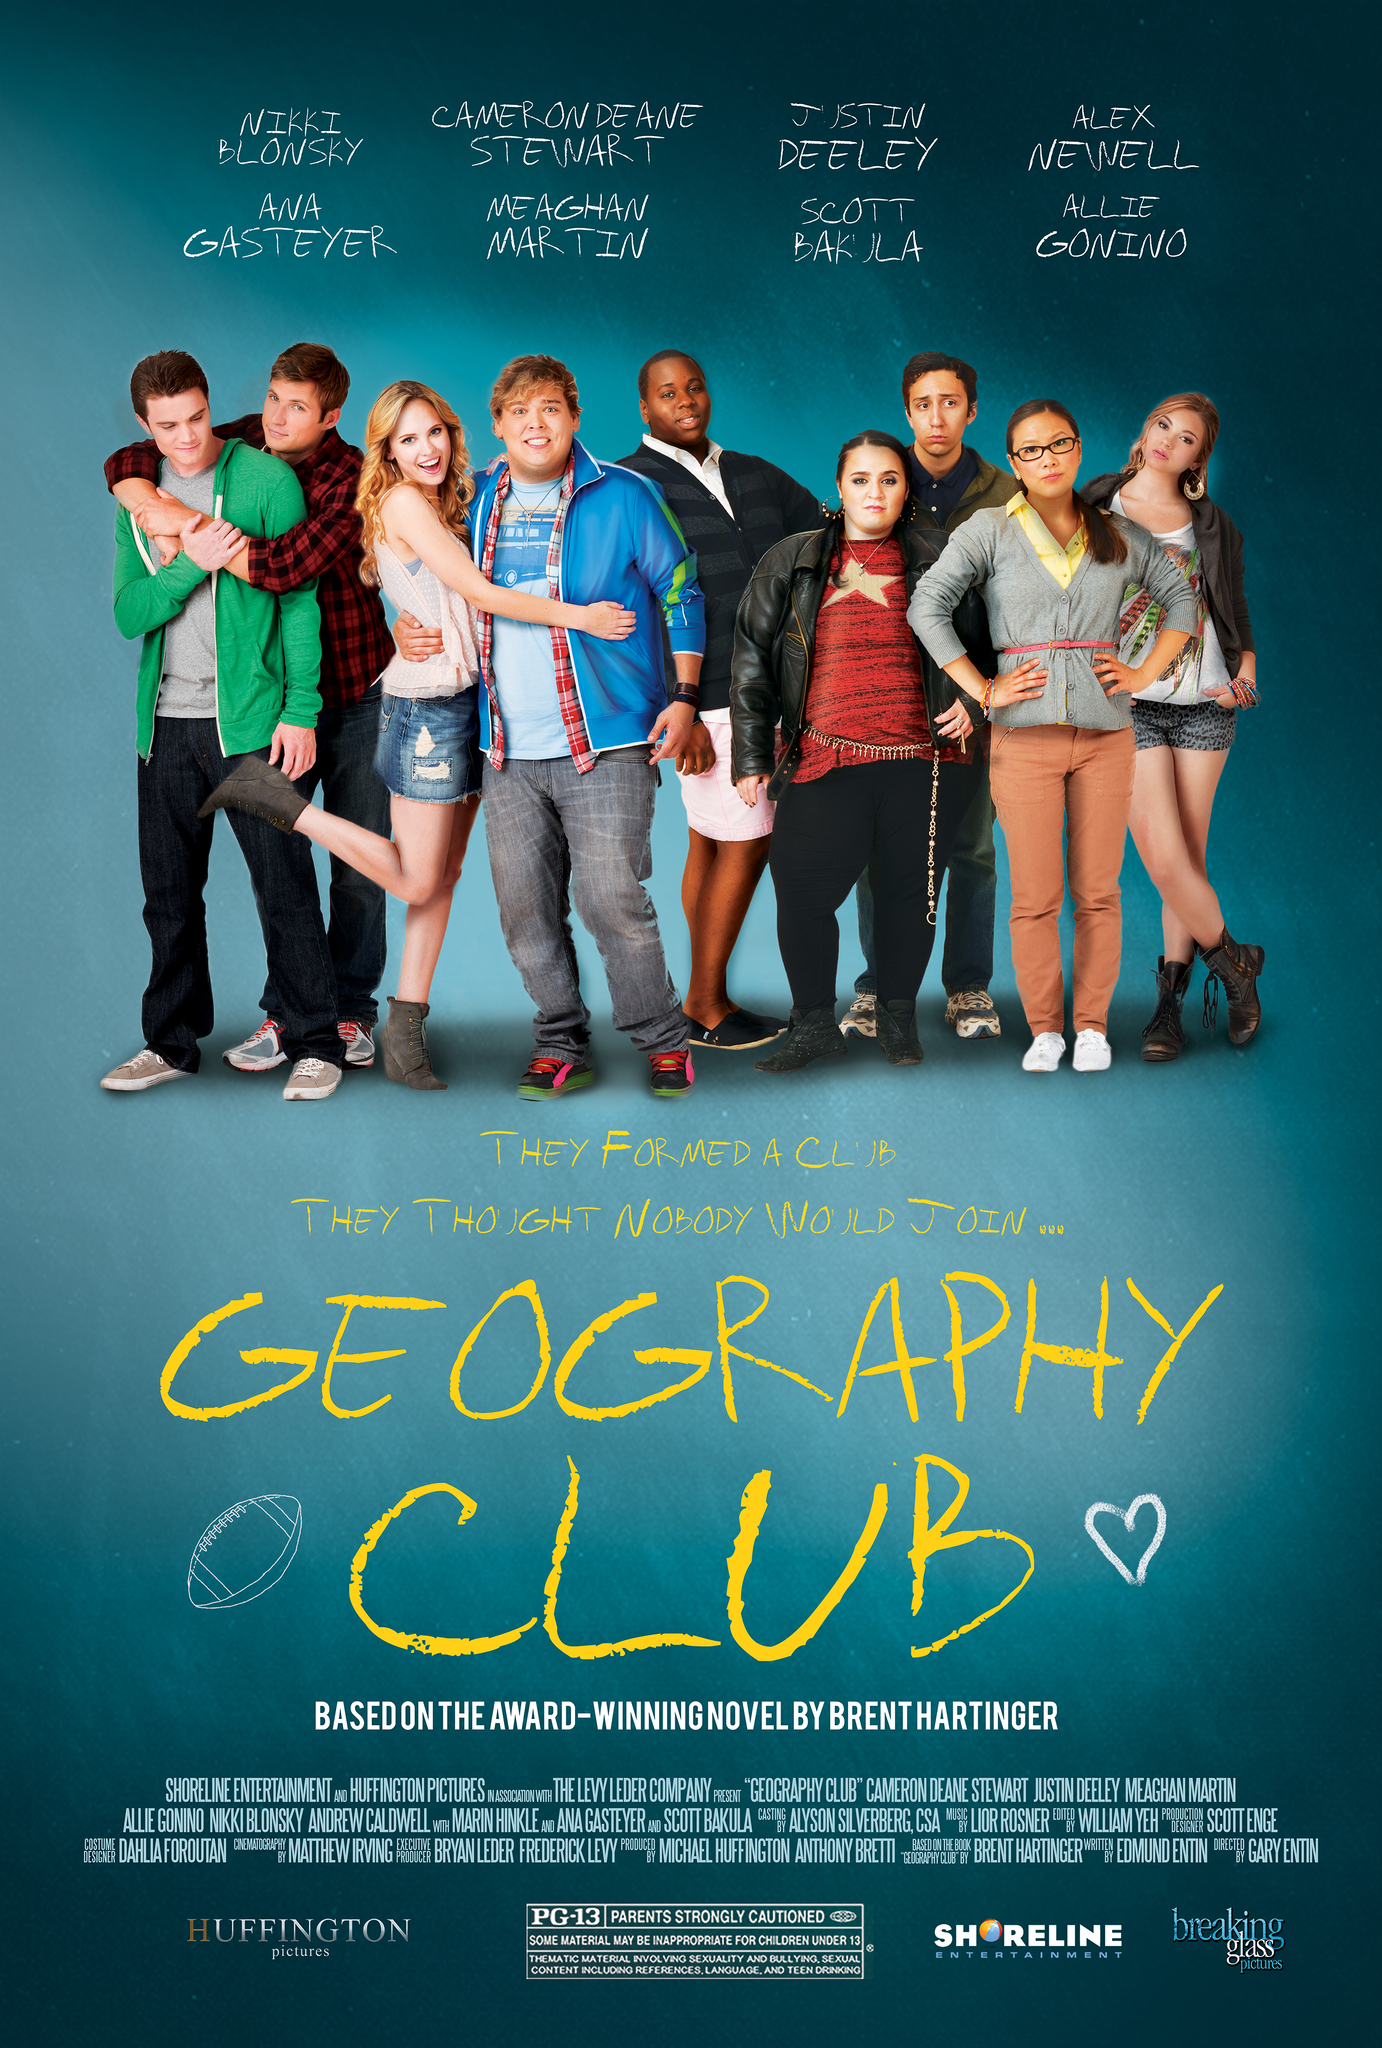 Justin Deeley, Ally Maki, Teo Olivares, Andrew Lewis Caldwell, Nikki Blonsky, Allie Gonino, Meaghan Martin, Cameron Deane Stewart, and Alex Newell in Geography Club (2013)